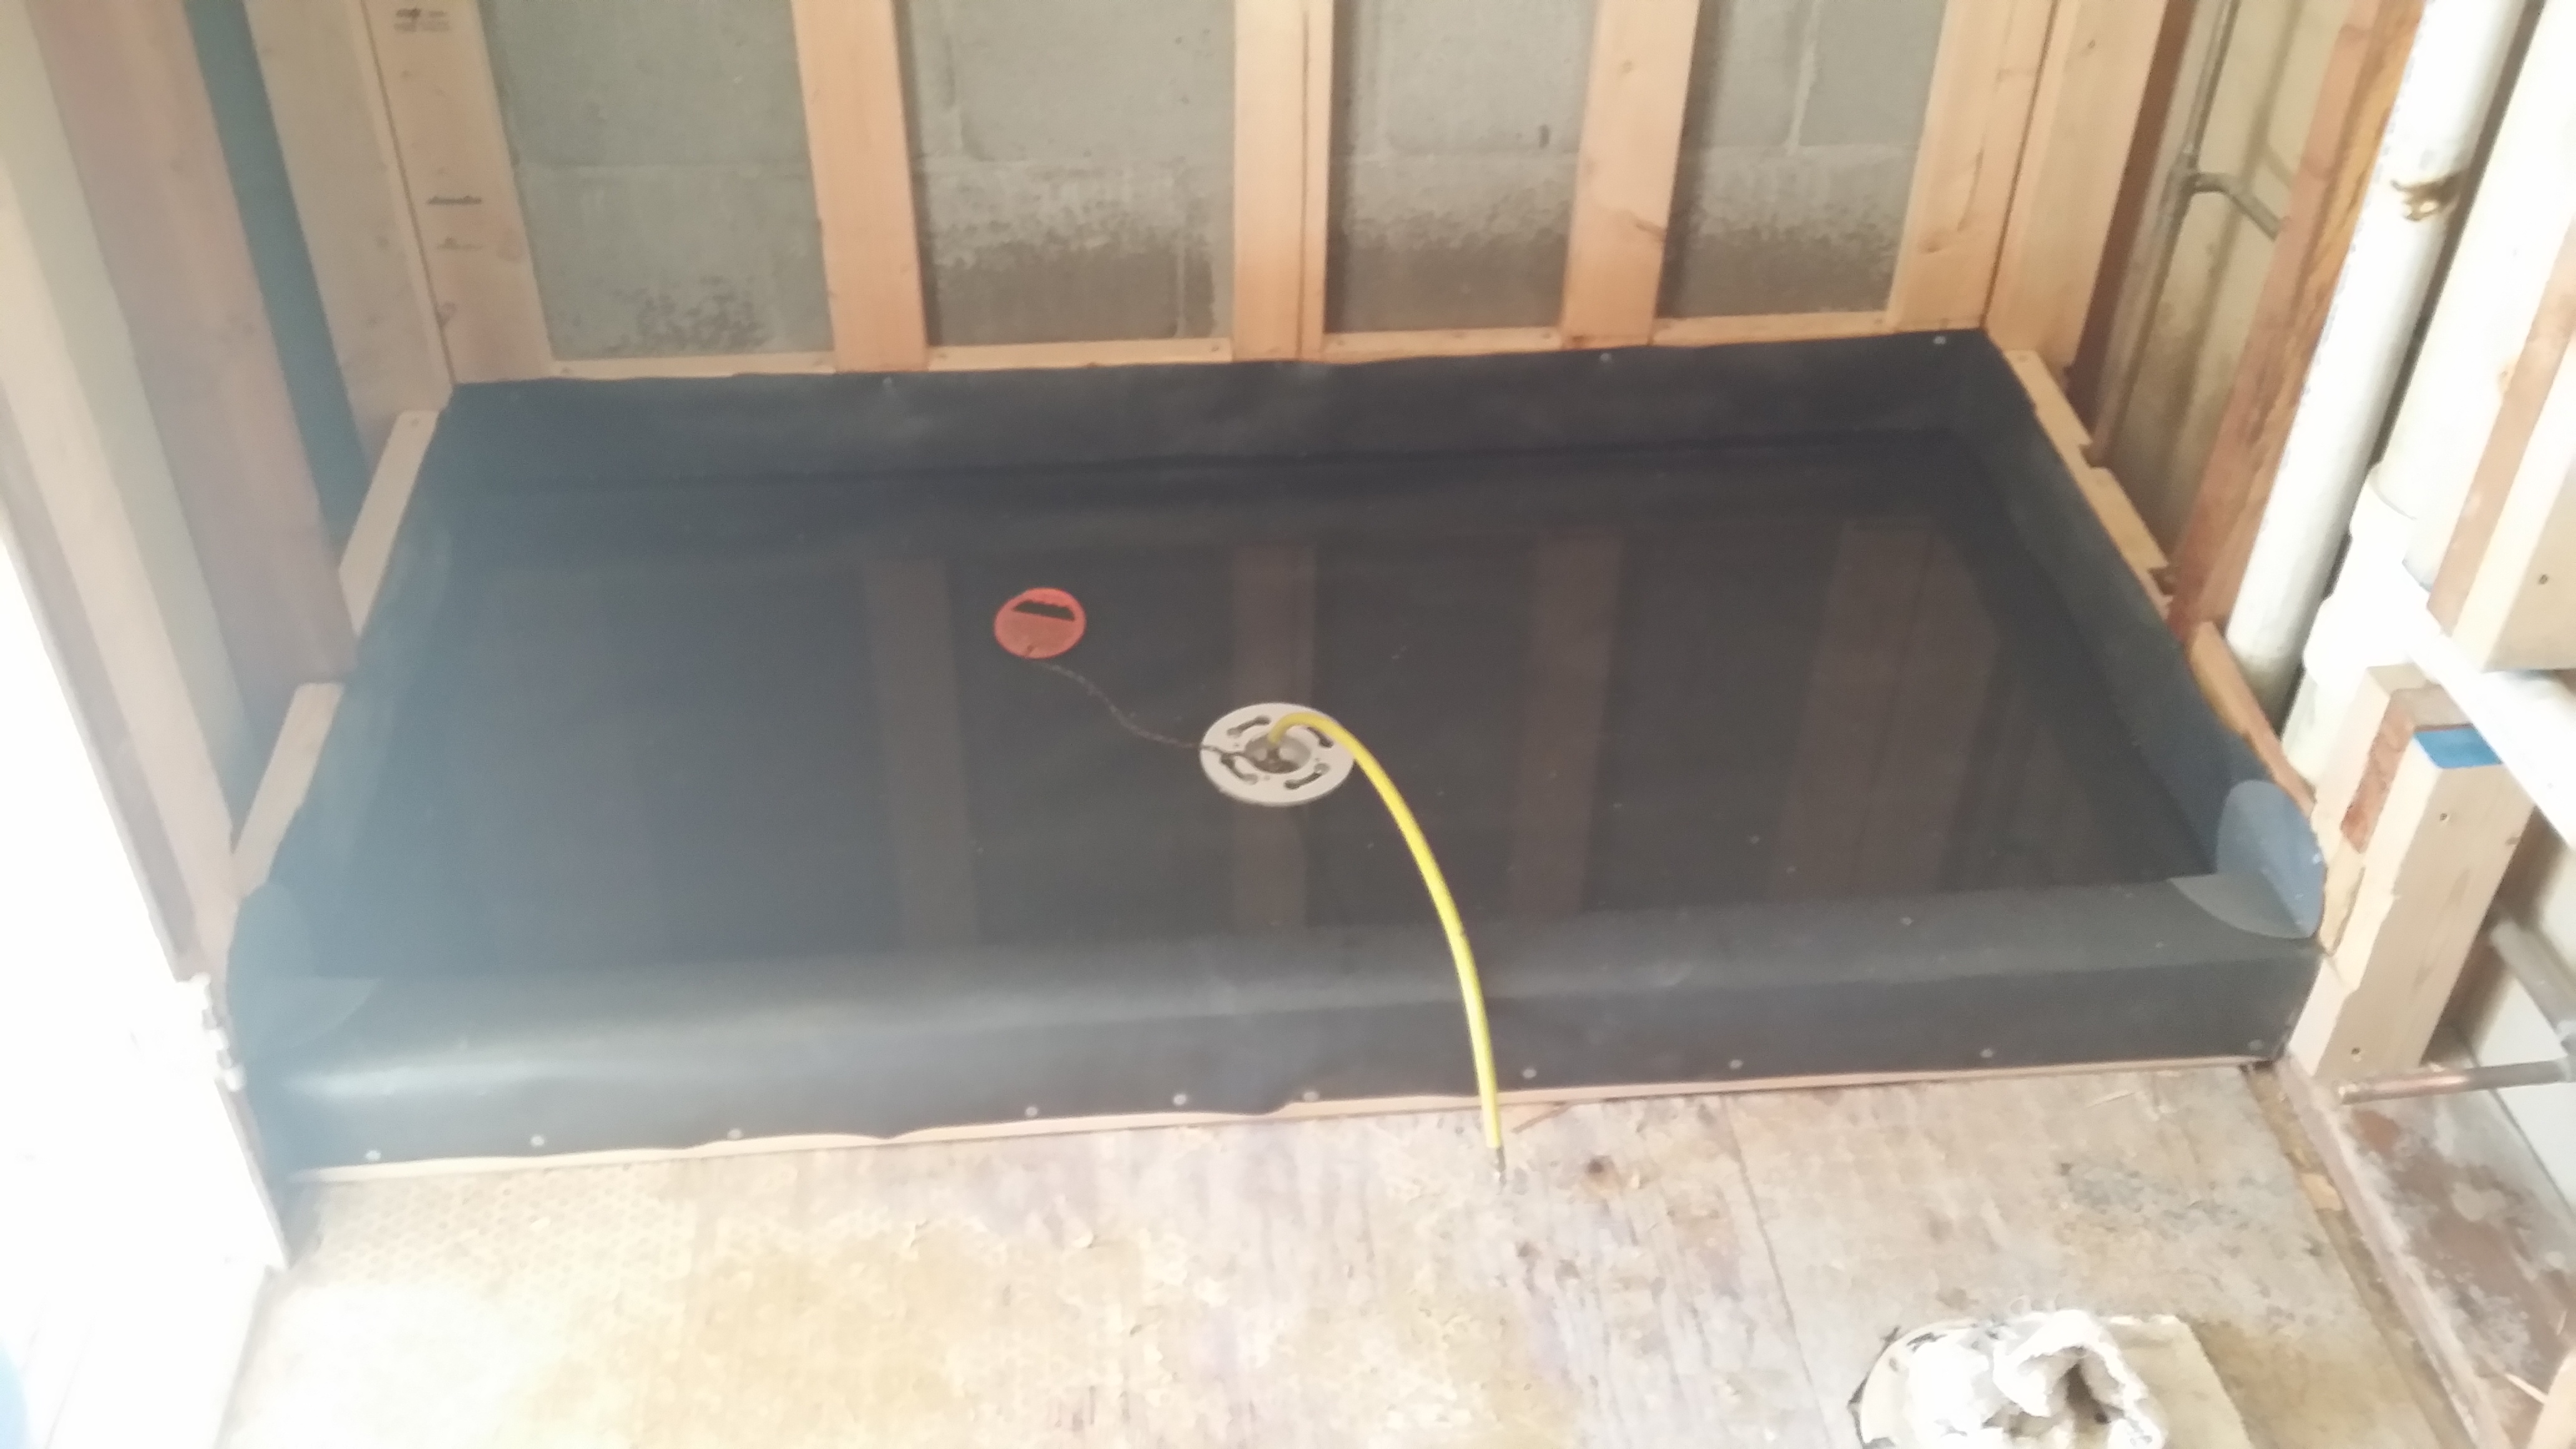 Pre slop shower pan liner page 2 plumbing zone - Shower base liner ...